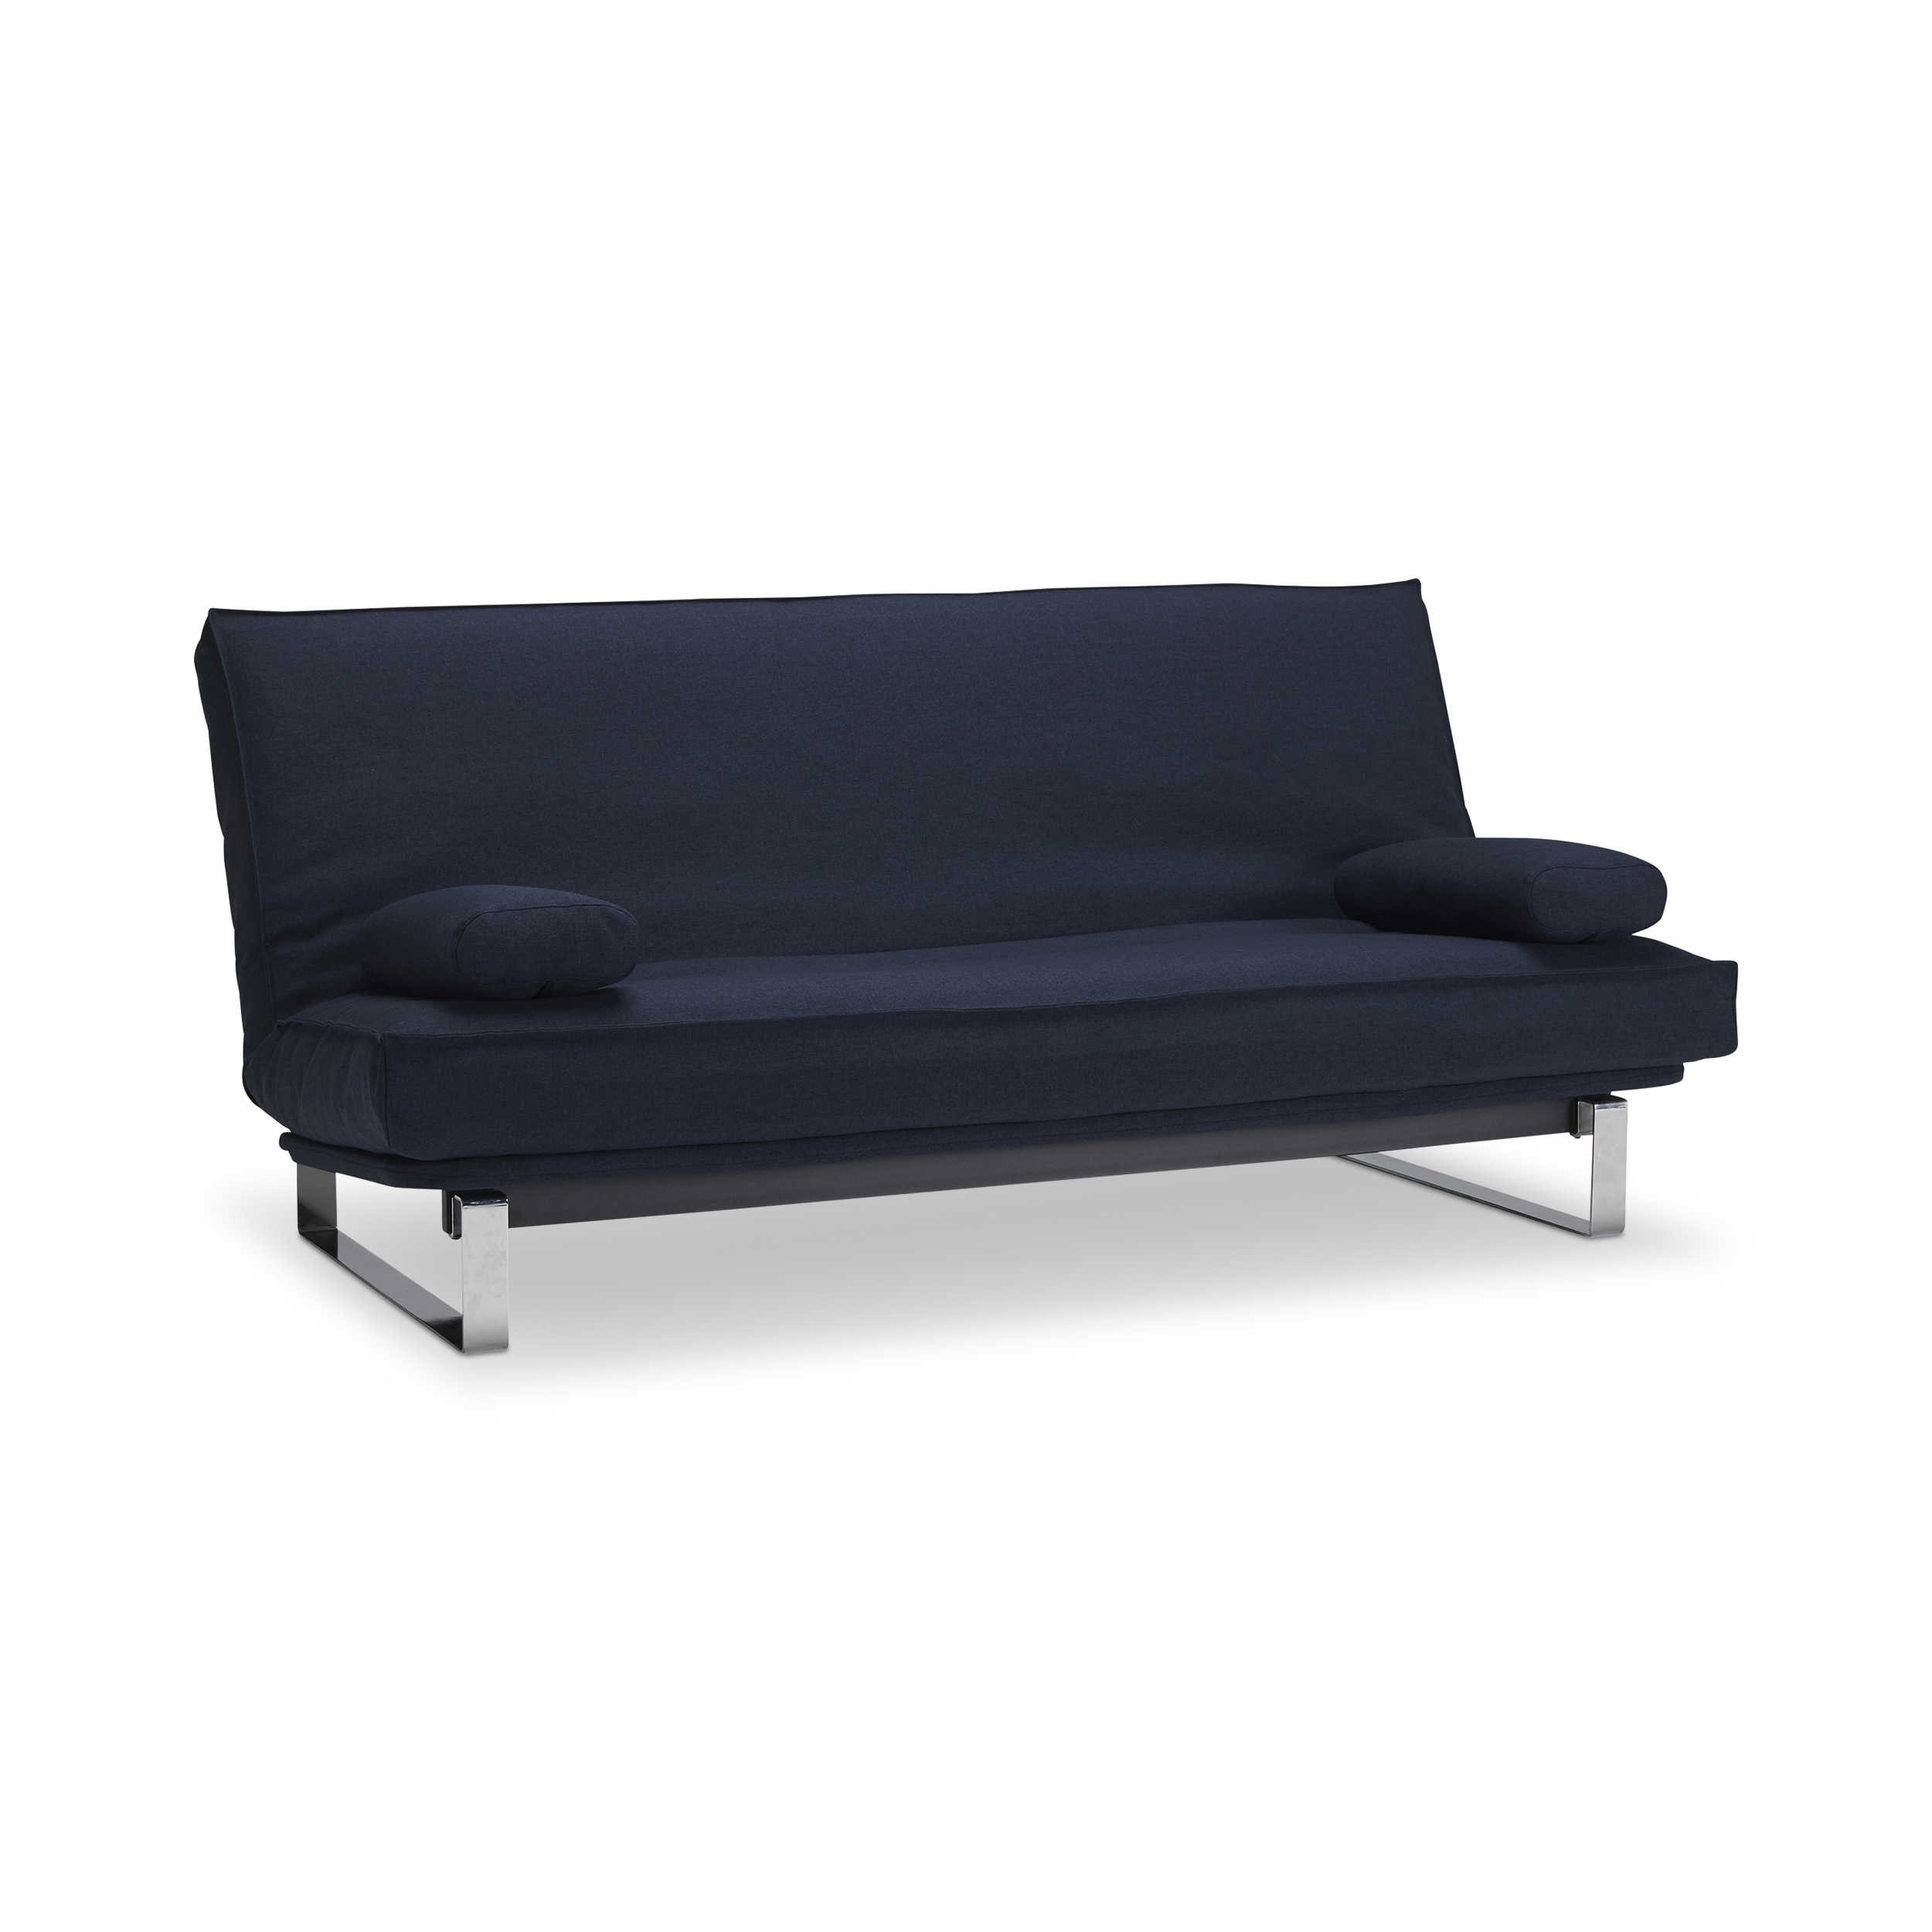 Innovation Schlafsofa Innovation Schlafsofa Minimum Blau Stoff Online Kaufen Bei